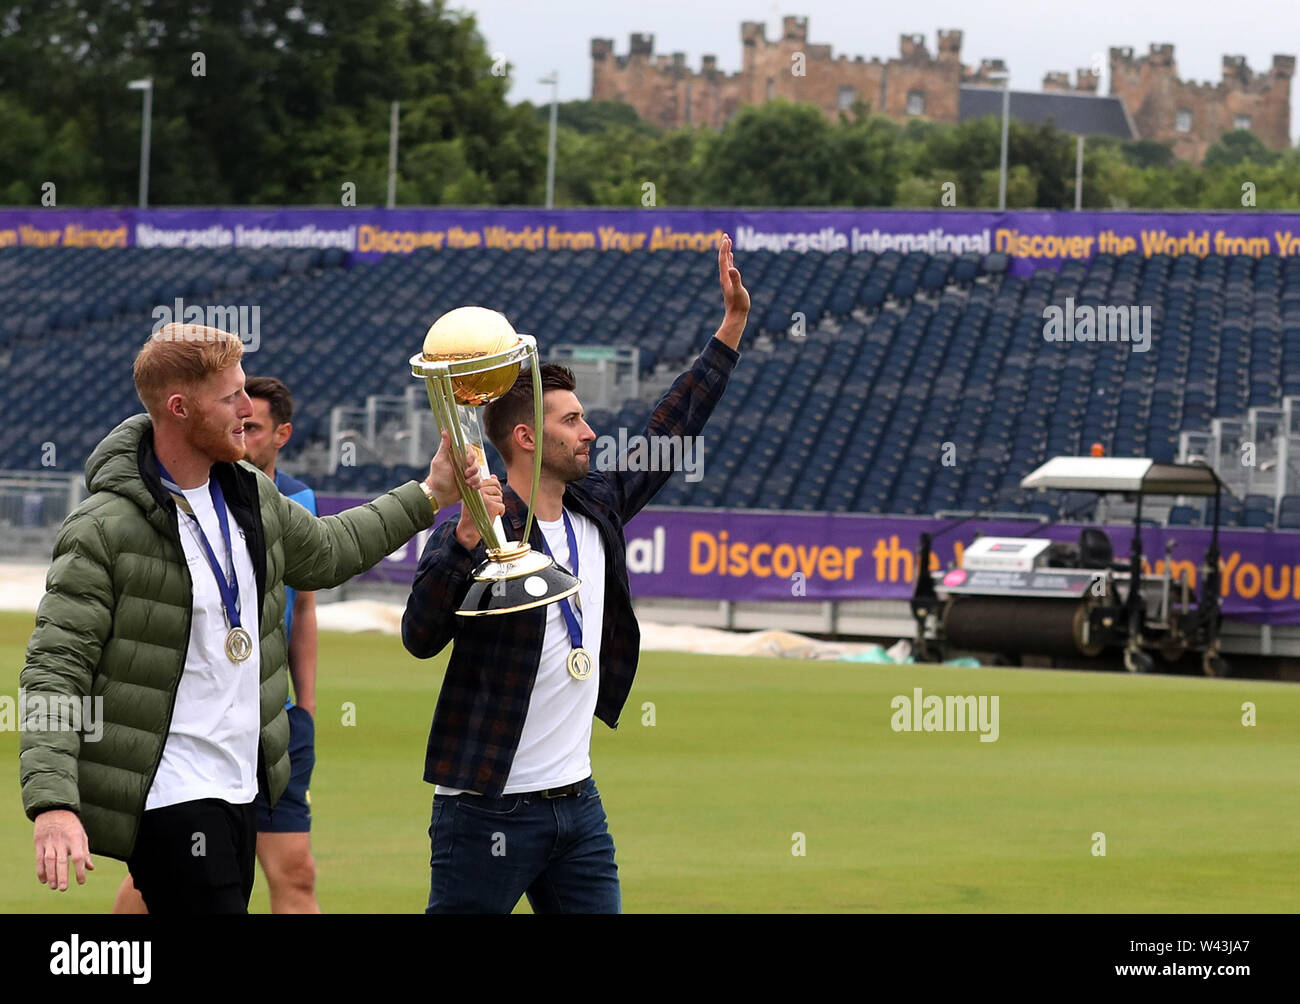 Ben Stokes (left) and Mark Wood celebrate with the Cricket World Cup trophy ahead of the Vitality Blast T20 match at Emirates Riverside, Durham. - Stock Image